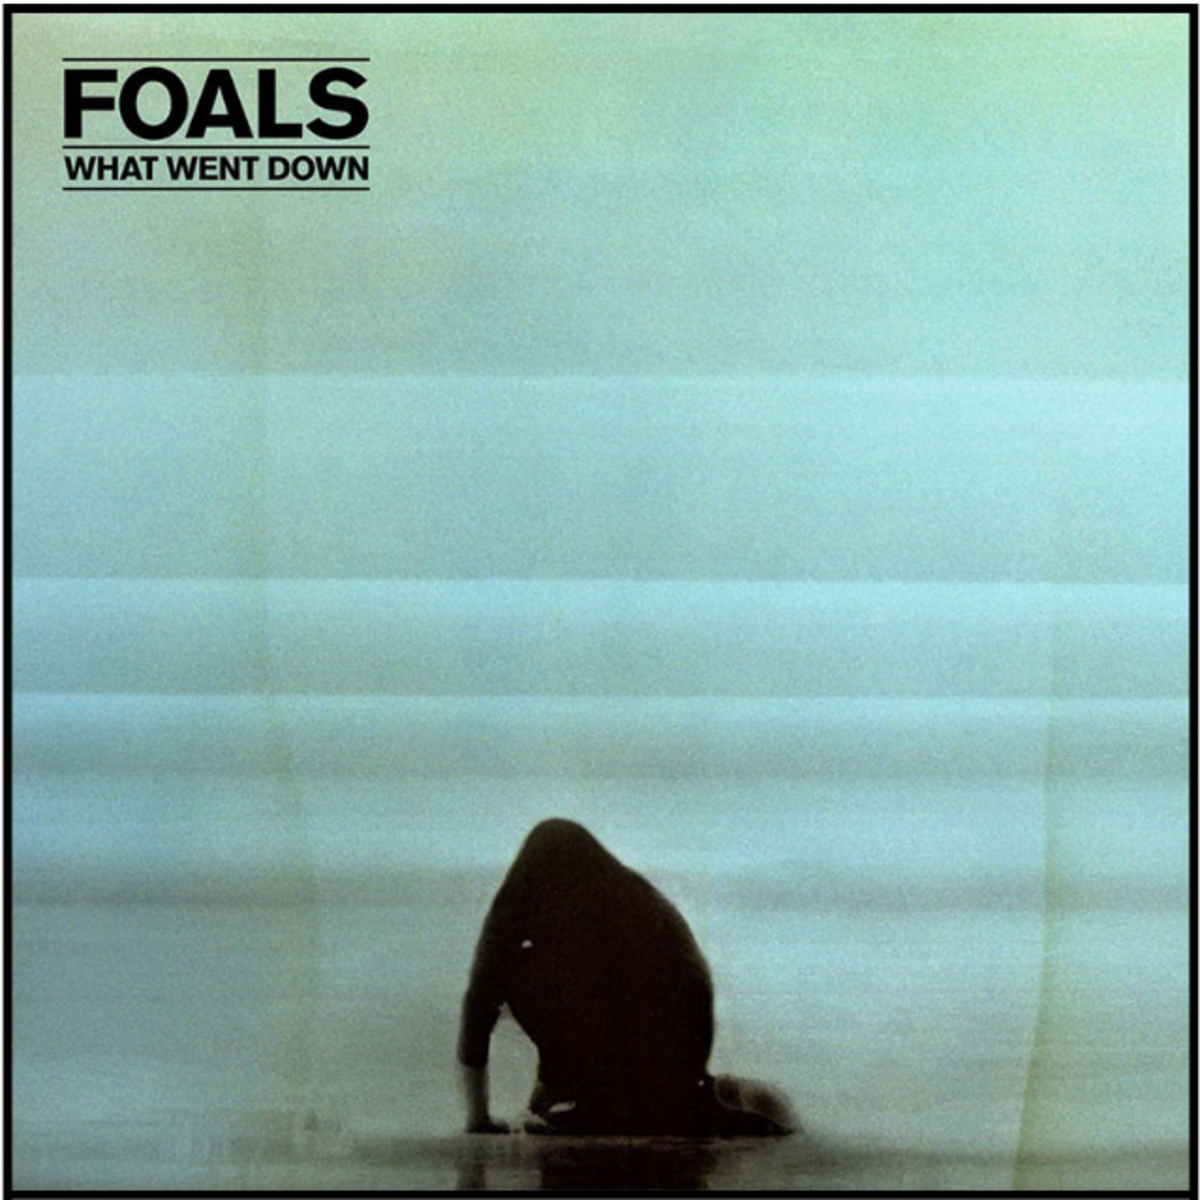 Spinnaker Record Club: Foals refine their signature style with What Went Down